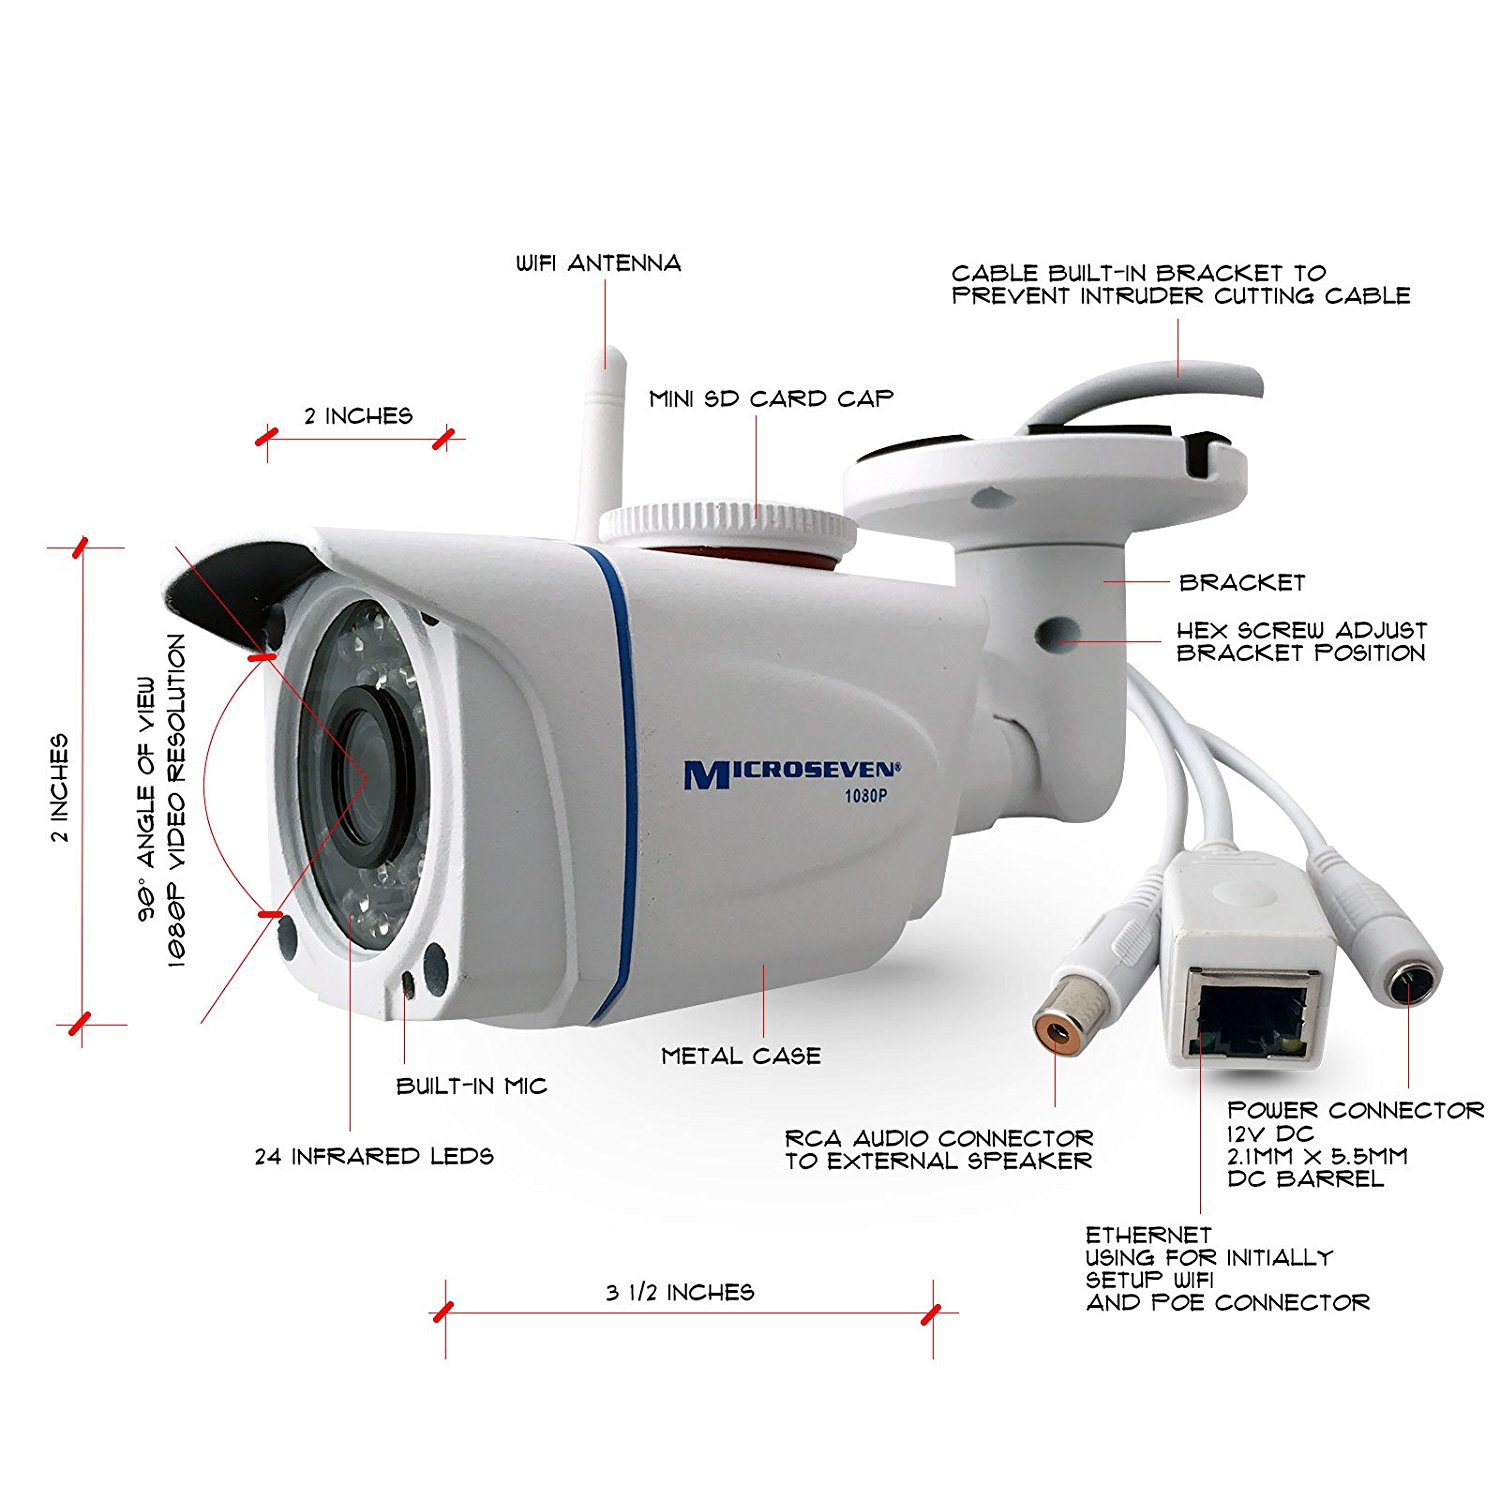 Rj25 Wiring Diagram Clearance Network Cameras Ip Camera Security Camera